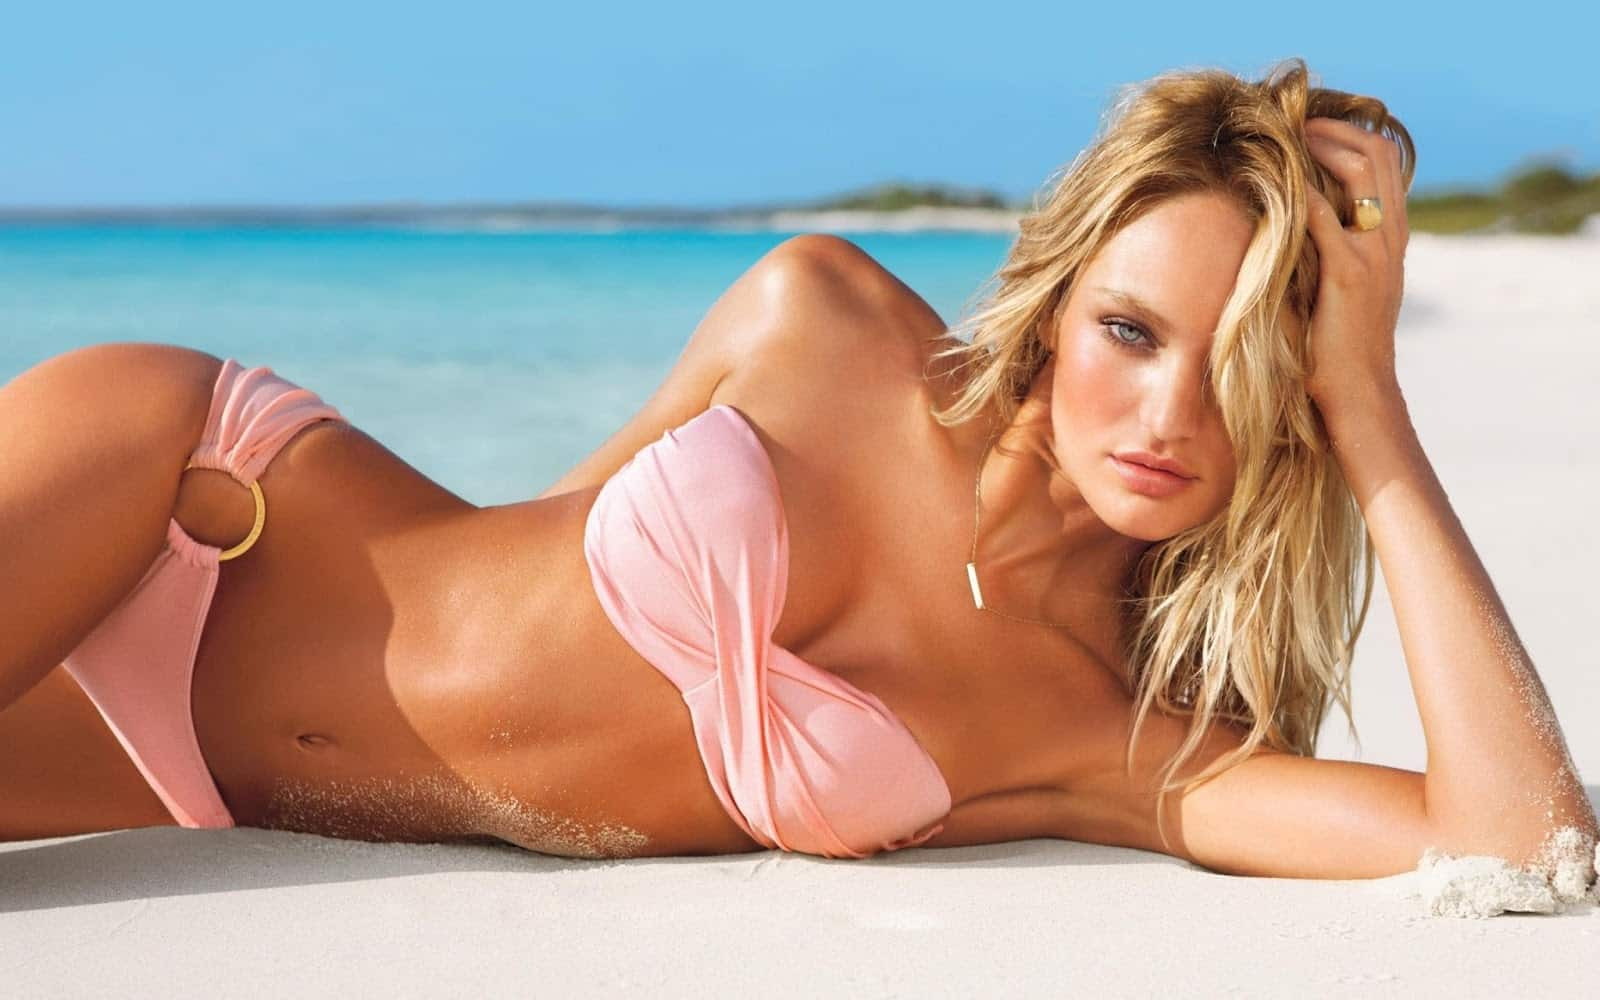 candice-swanepoel-model-beach-photo-widescreen-2560x1600